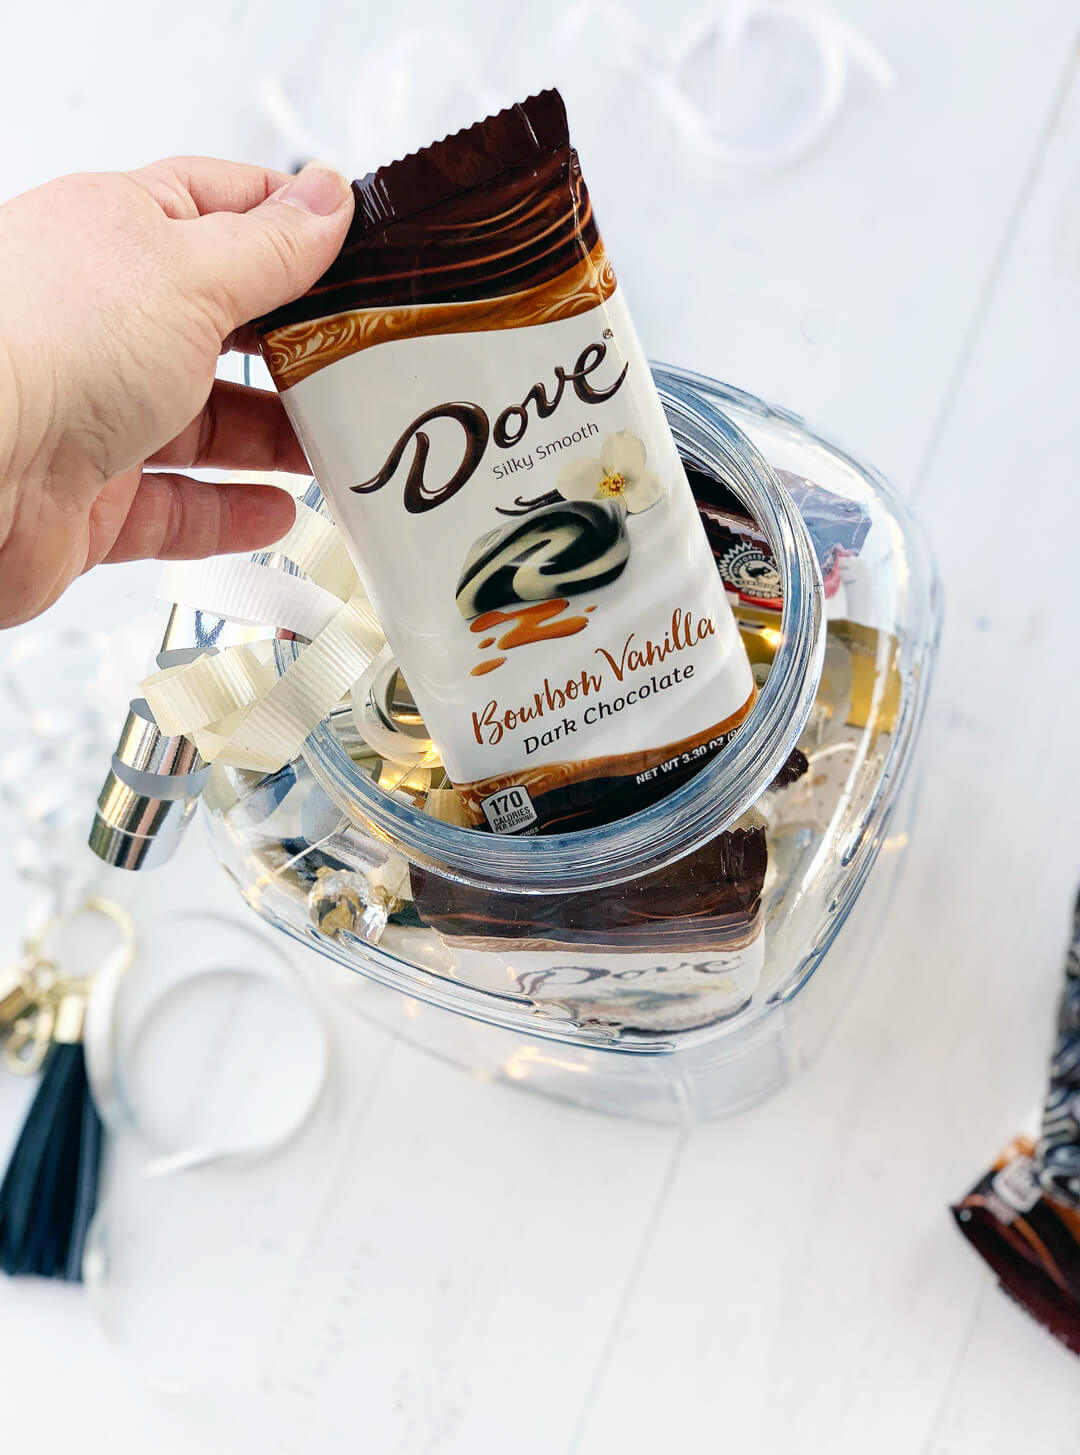 Dove Chocolate Bourbon Vanilla